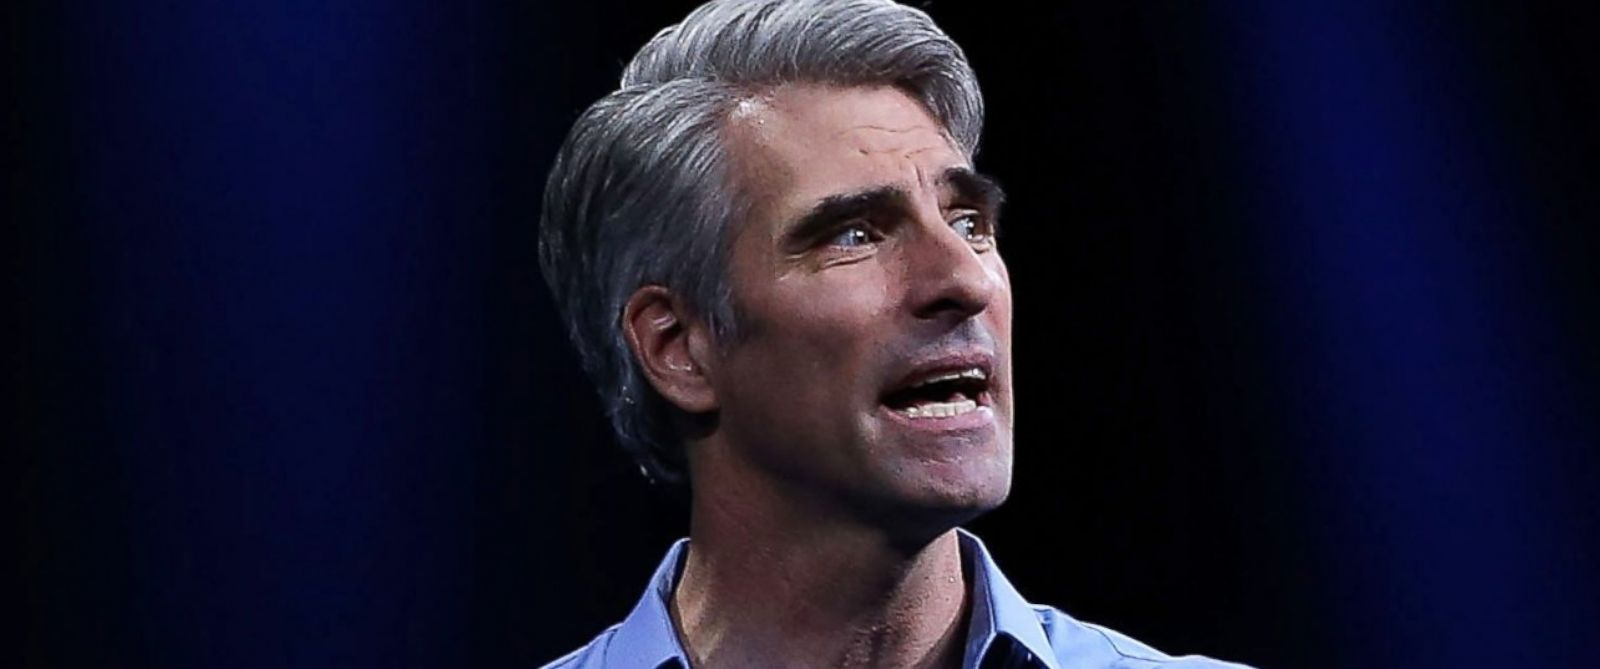 PHOTO: Craig Federighi, Apples senior vice president of Software Engineering, speaks during Apple WWDC on June 8, 2015 in San Francisco.